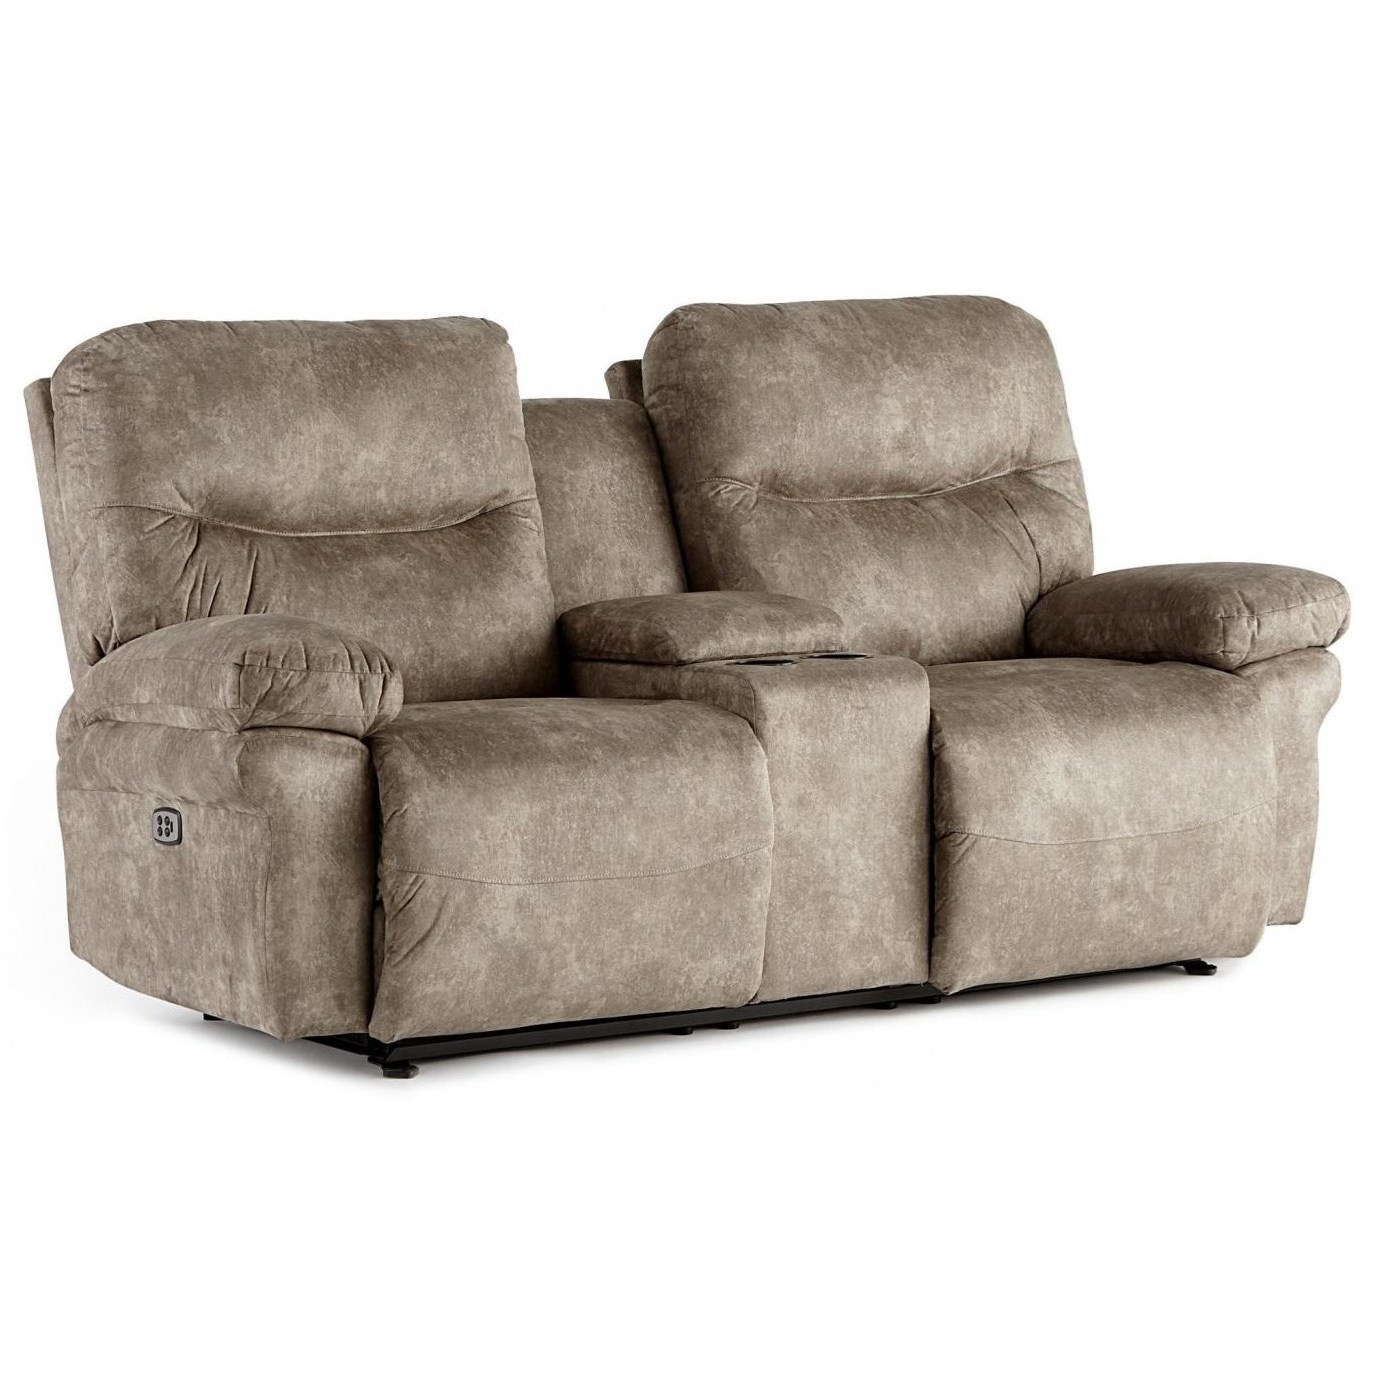 Leya Power Space Saver Loveseat with Console by Best Home Furnishings at Baer's Furniture